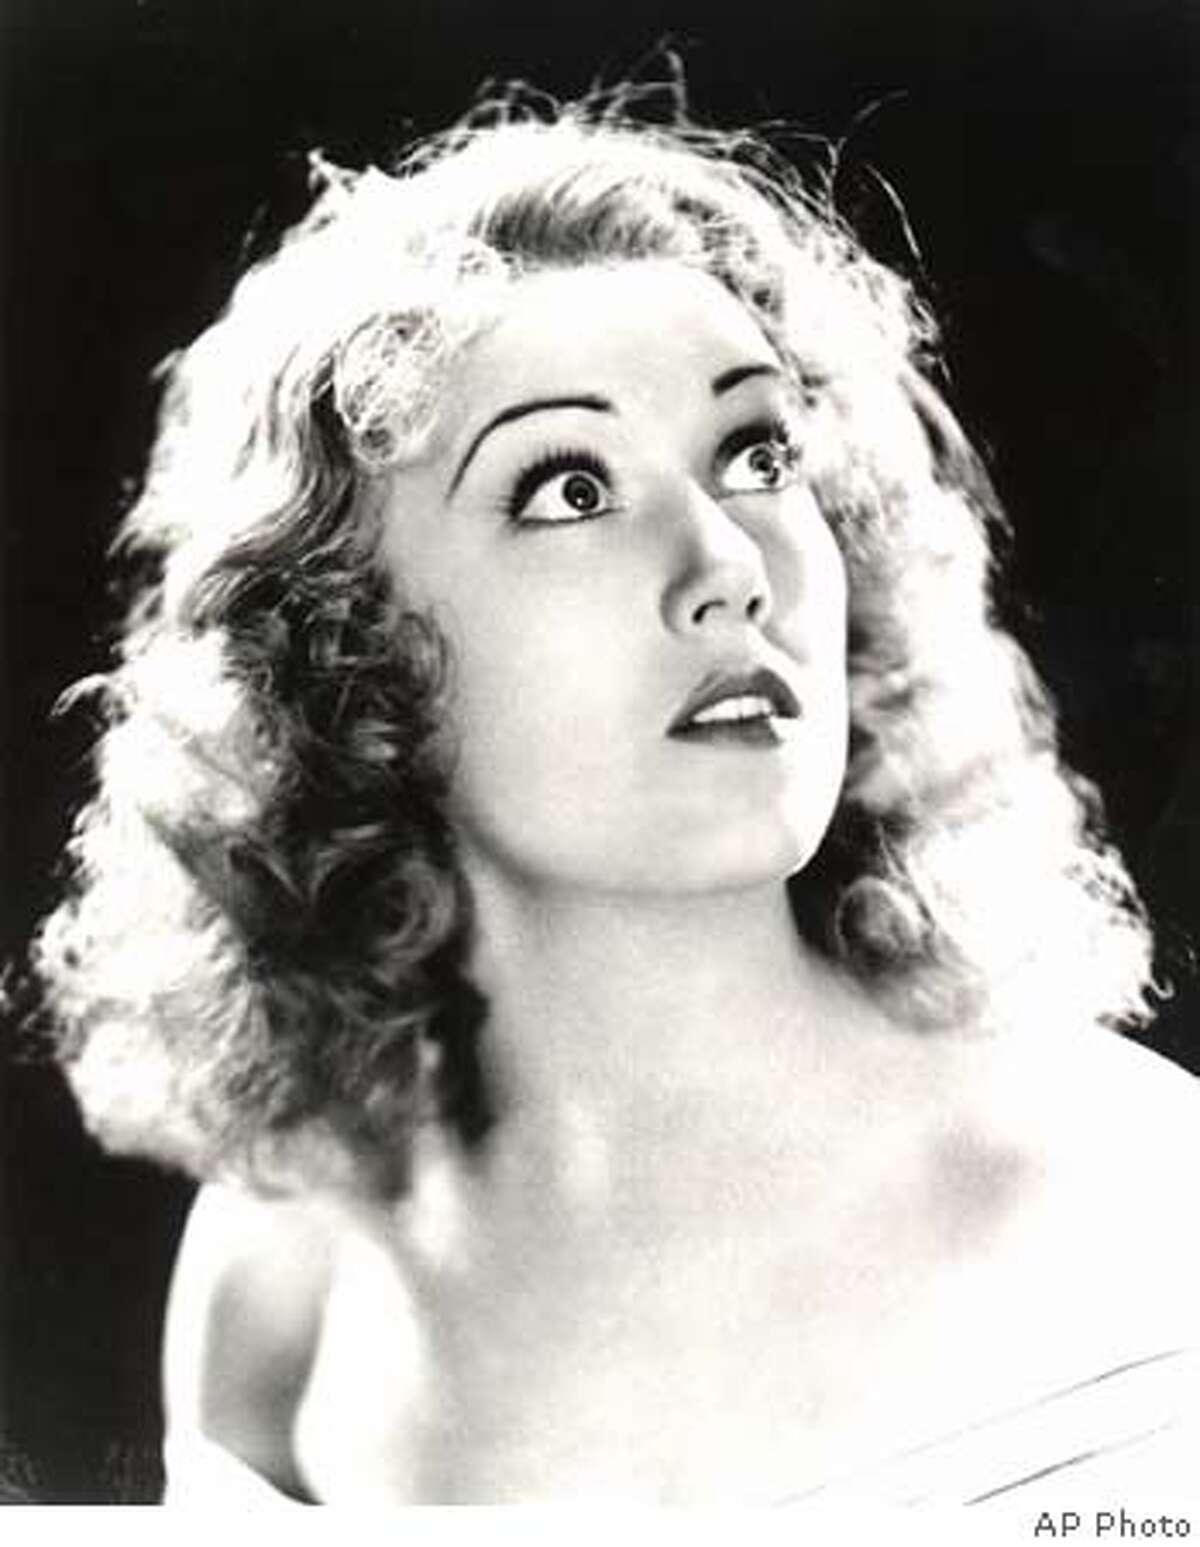 """**FILE**This is an undated picture of Fay Wray, best-remembered as the beautiful woman held by the giant gorilla in """"King Kong,"""" the 1933 classic film. Wray, 96, died Sunday, Aug.8, 2004, at her Manhattan apartment, said Rick McKay, a friend and director of the last film she appeared in.(AP Photo) Ran on: 08-10-2004 King Kong takes a terrifyingly longing look at Fay Wray, out on a limb in the jungle in the 1933 classic film on which her fame rests. Ran on: 08-10-2004 Ran on: 08-10-2004 King Kong takes a terrifyingly longing look at Fay Wray, out on a limb in the jungle in the 1933 classic film on which her fame rests. Ran on: 08-10-2004 Ran on: 08-10-2004 Ran on: 09-05-2004 Tobey Maguire: Young for his age? Ran on: 12-28-2004 03.26.04: JAN BERRY UNDATED B&W PHOTO"""